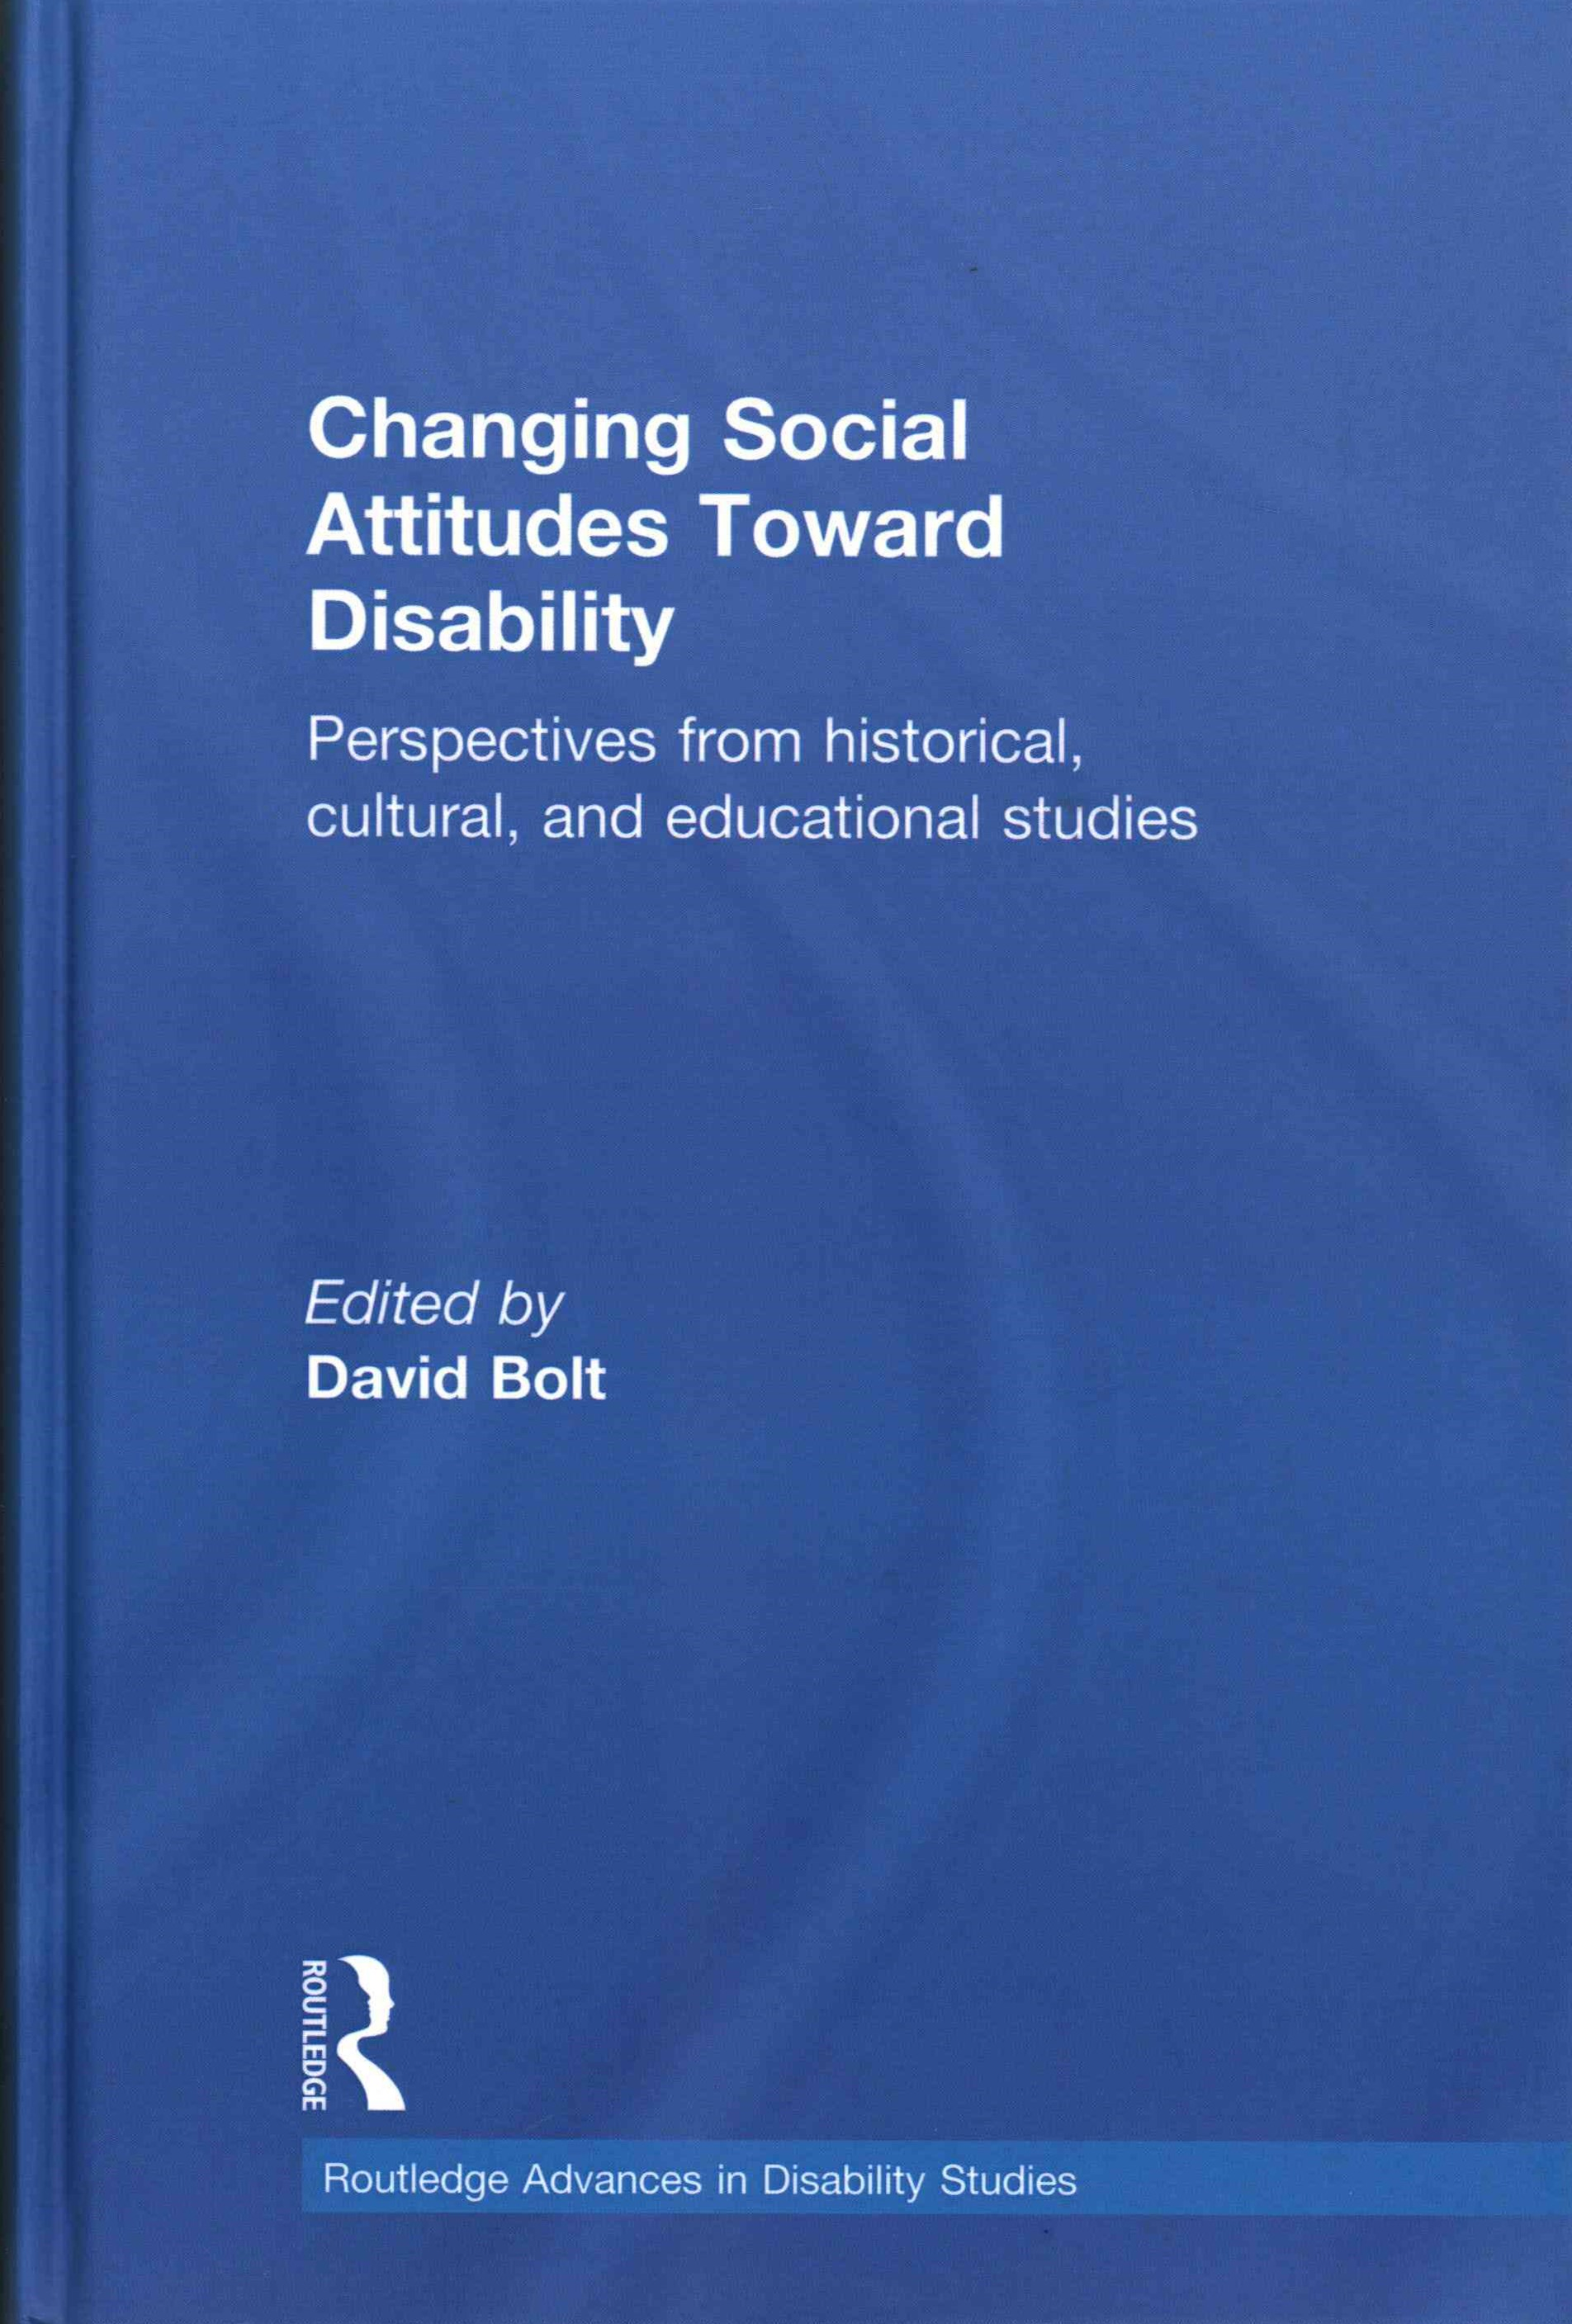 Changing Social Attitudes Toward Disability